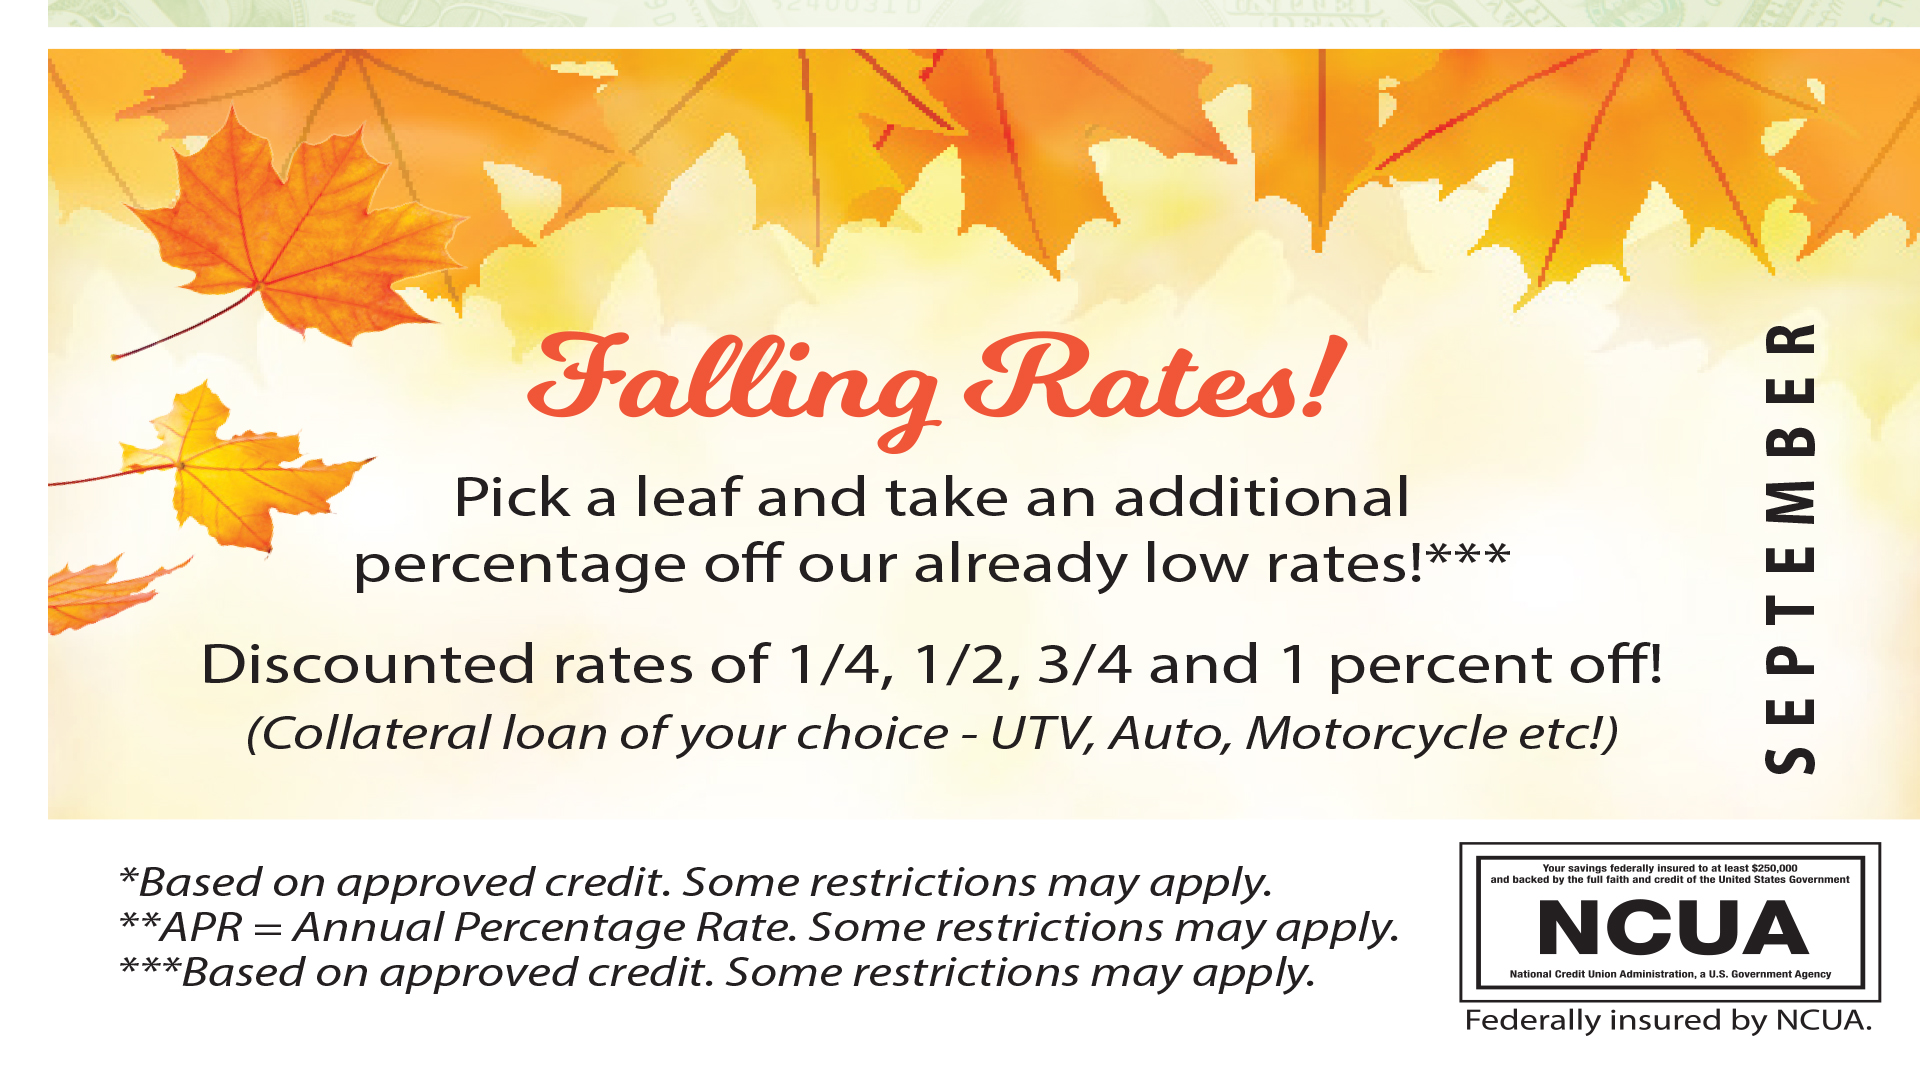 Falling Rates is Here!  Come in any time September 1st - October 31st and pick a leaf! Discounted rates of 1/4, 1/2, 3/4 and 1% off your already low rate!  This applies to the collateral loan of your choice ( UTV, ATV, Motorcycle or Auto).  Based on approve credit. Some restrictions may apply.  Call MCFCU at 928-753-8000 for more information.